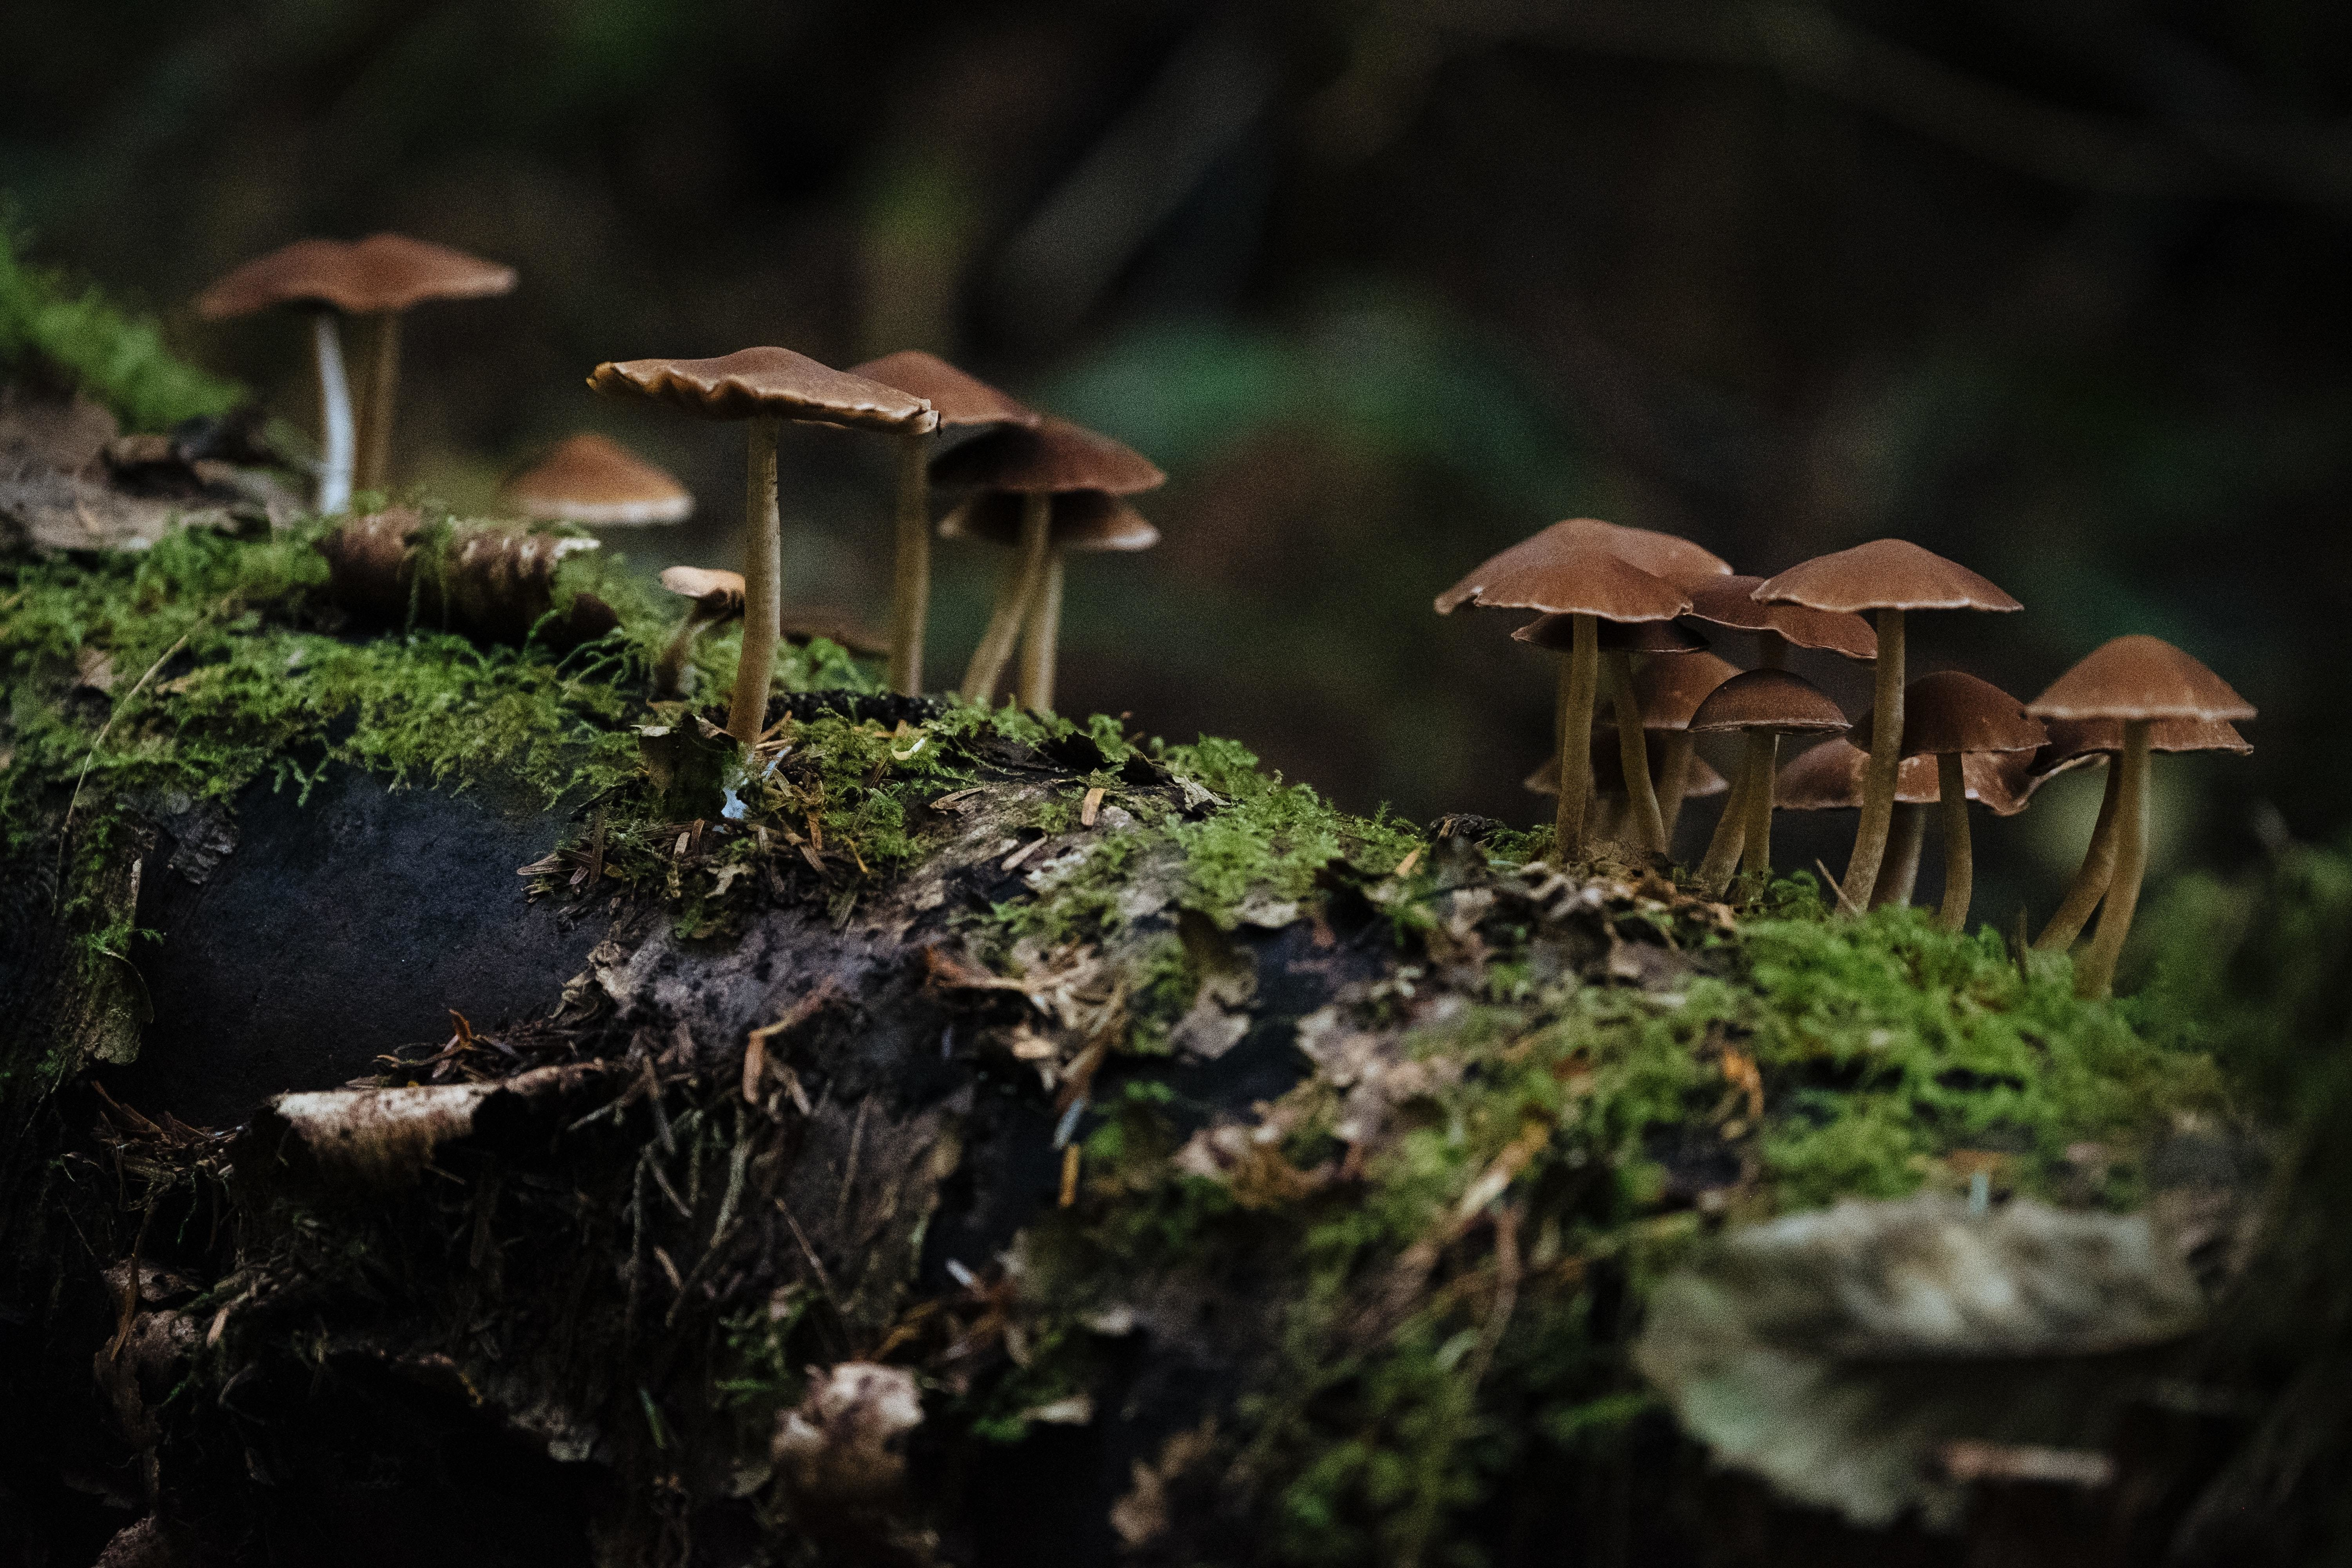 mushrooms are seen in a forest